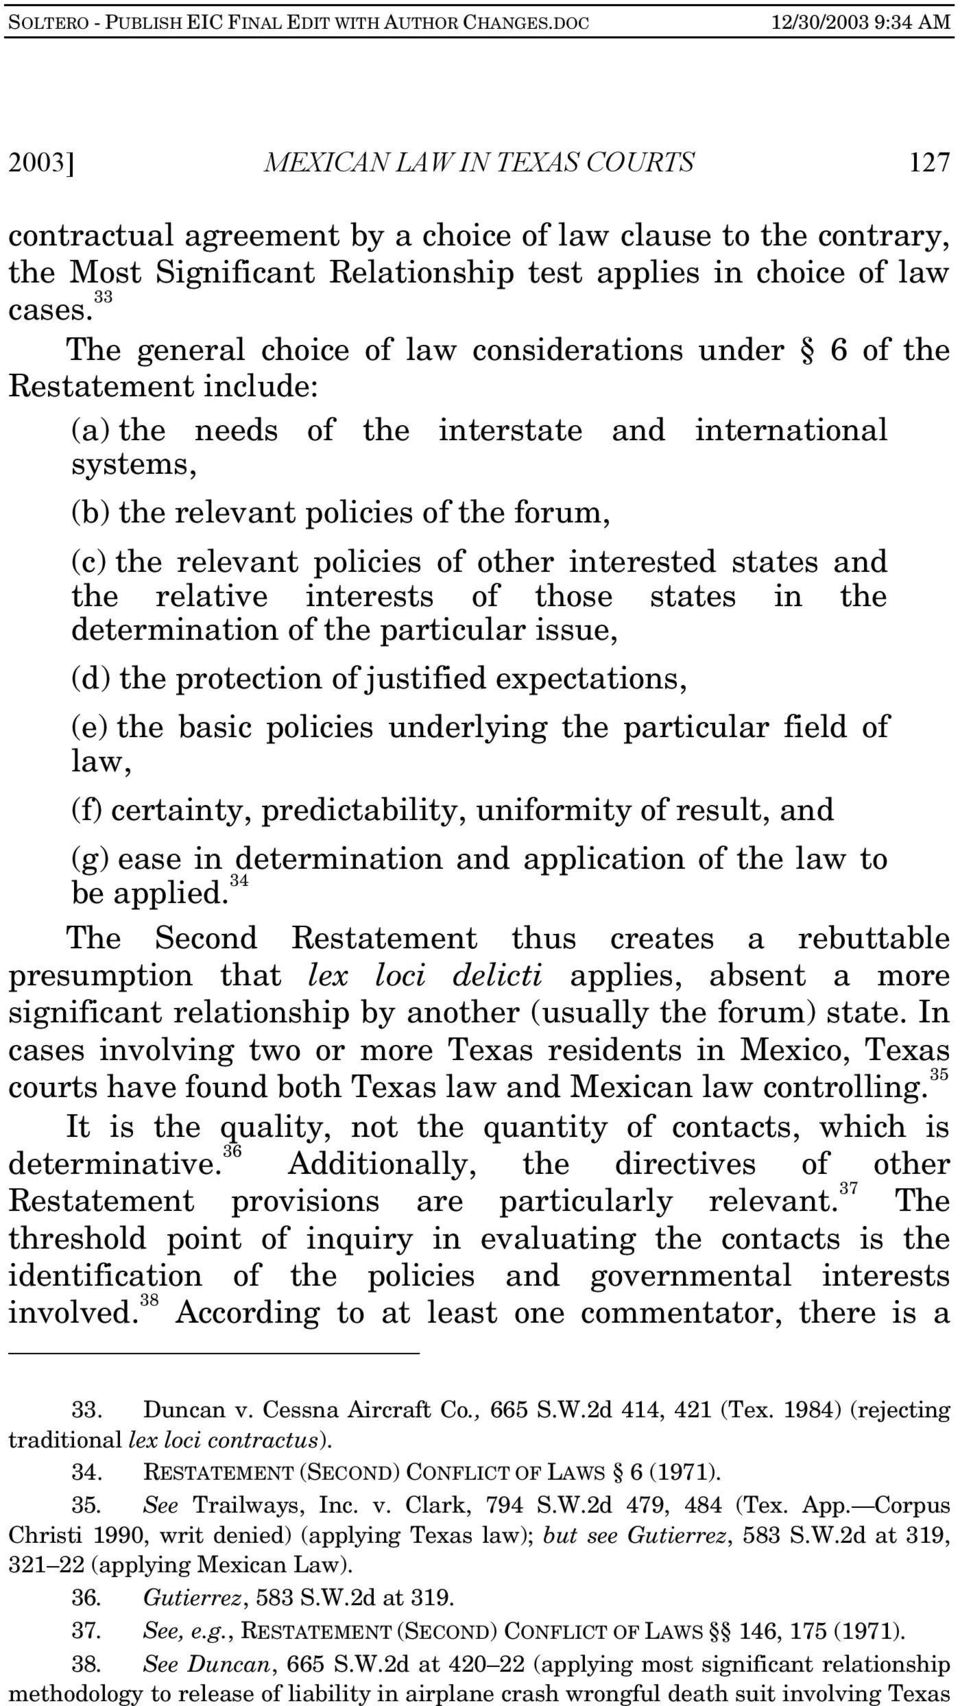 policies of other interested states and the relative interests of those states in the determination of the particular issue, (d) the protection of justified expectations, (e) the basic policies